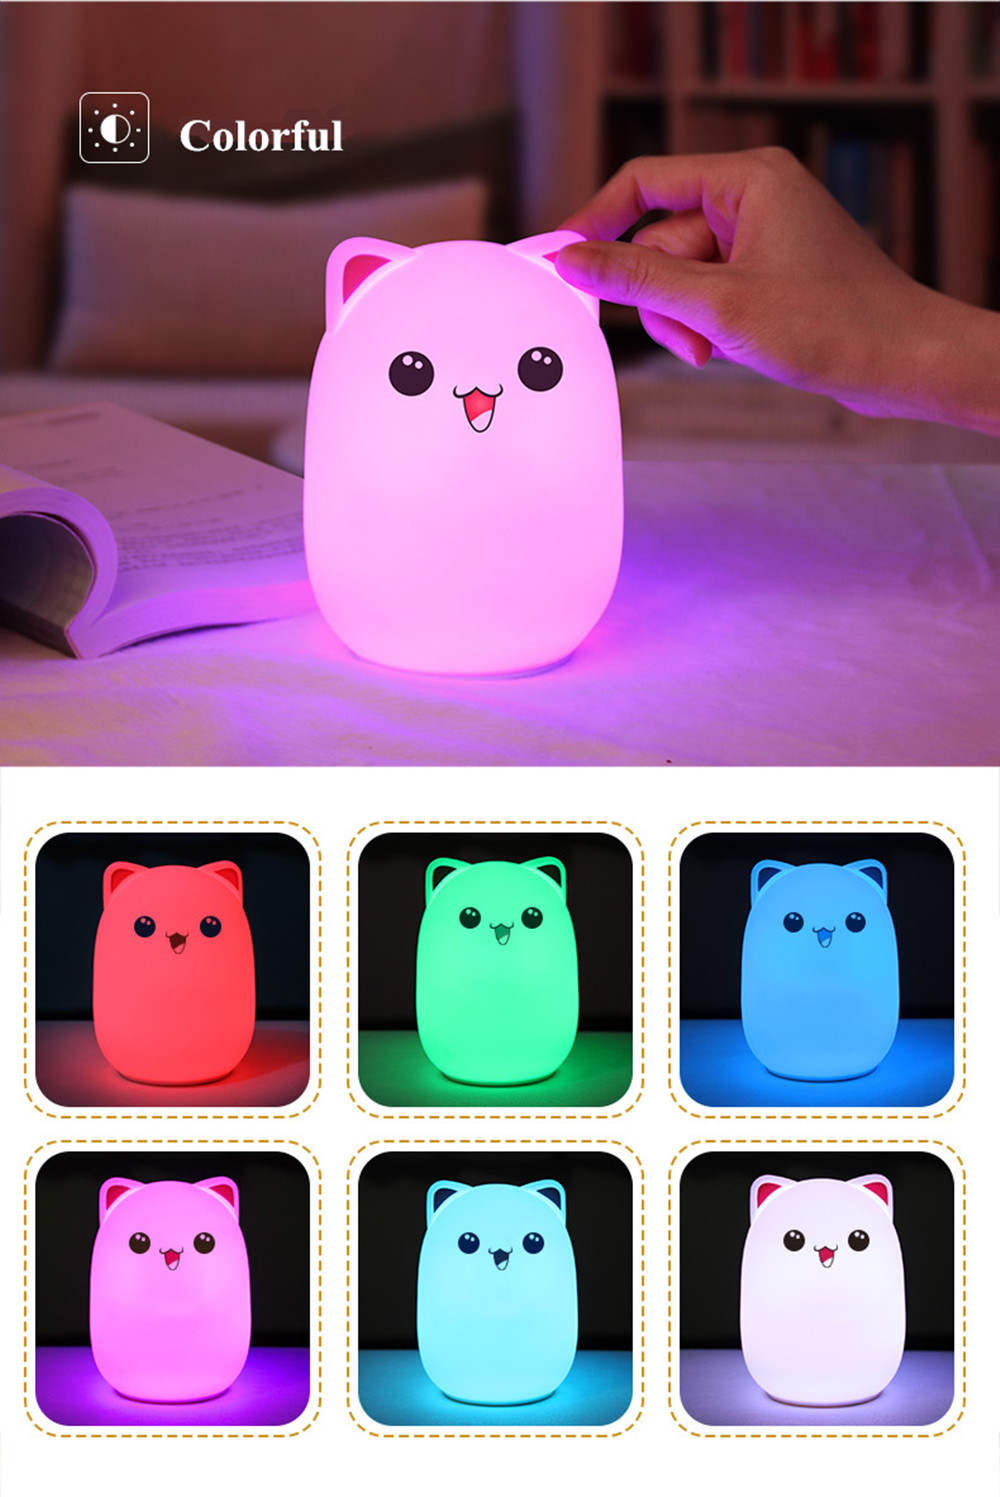 Colorful LED Night Light Lovely Silicone Cartoon Bear Rechargeable Touch Desk Bedroom Decor Tablet Lamp for Kids Girl (4)